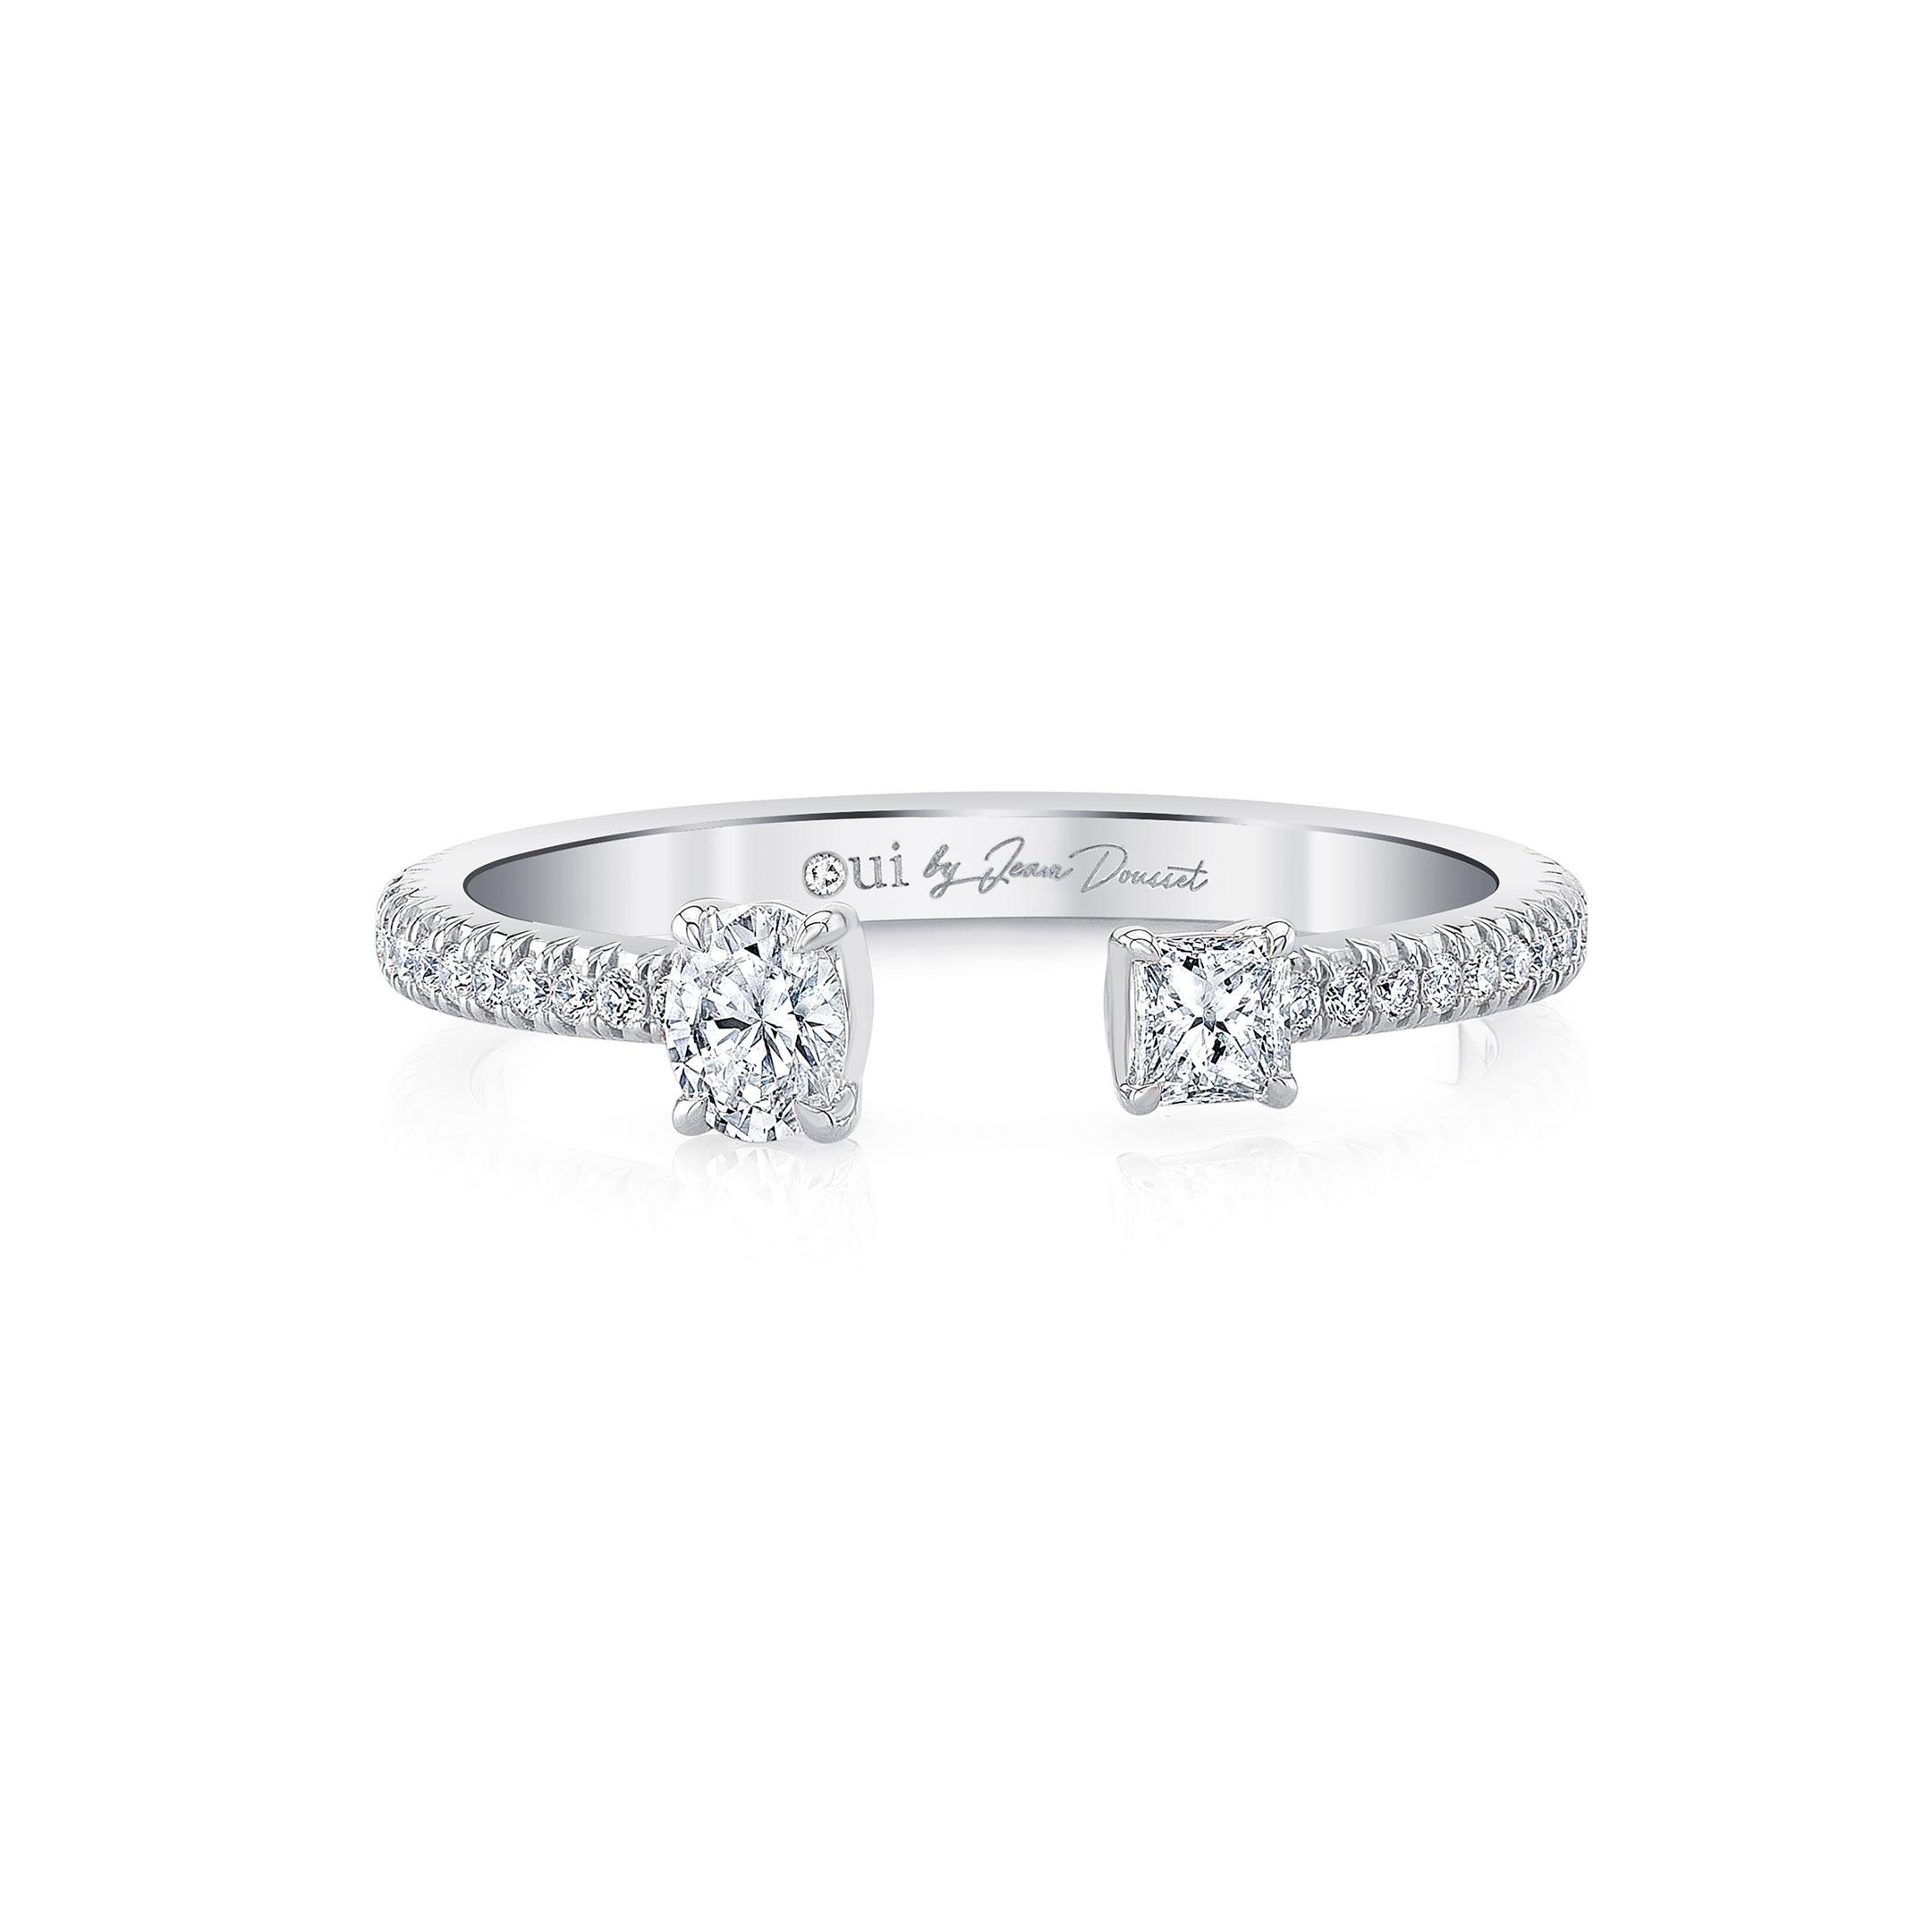 Celeste Mixed Diamond Open Pavé Ring, oval & princess in 18k White Gold Front View by Oui by Jean Dousset